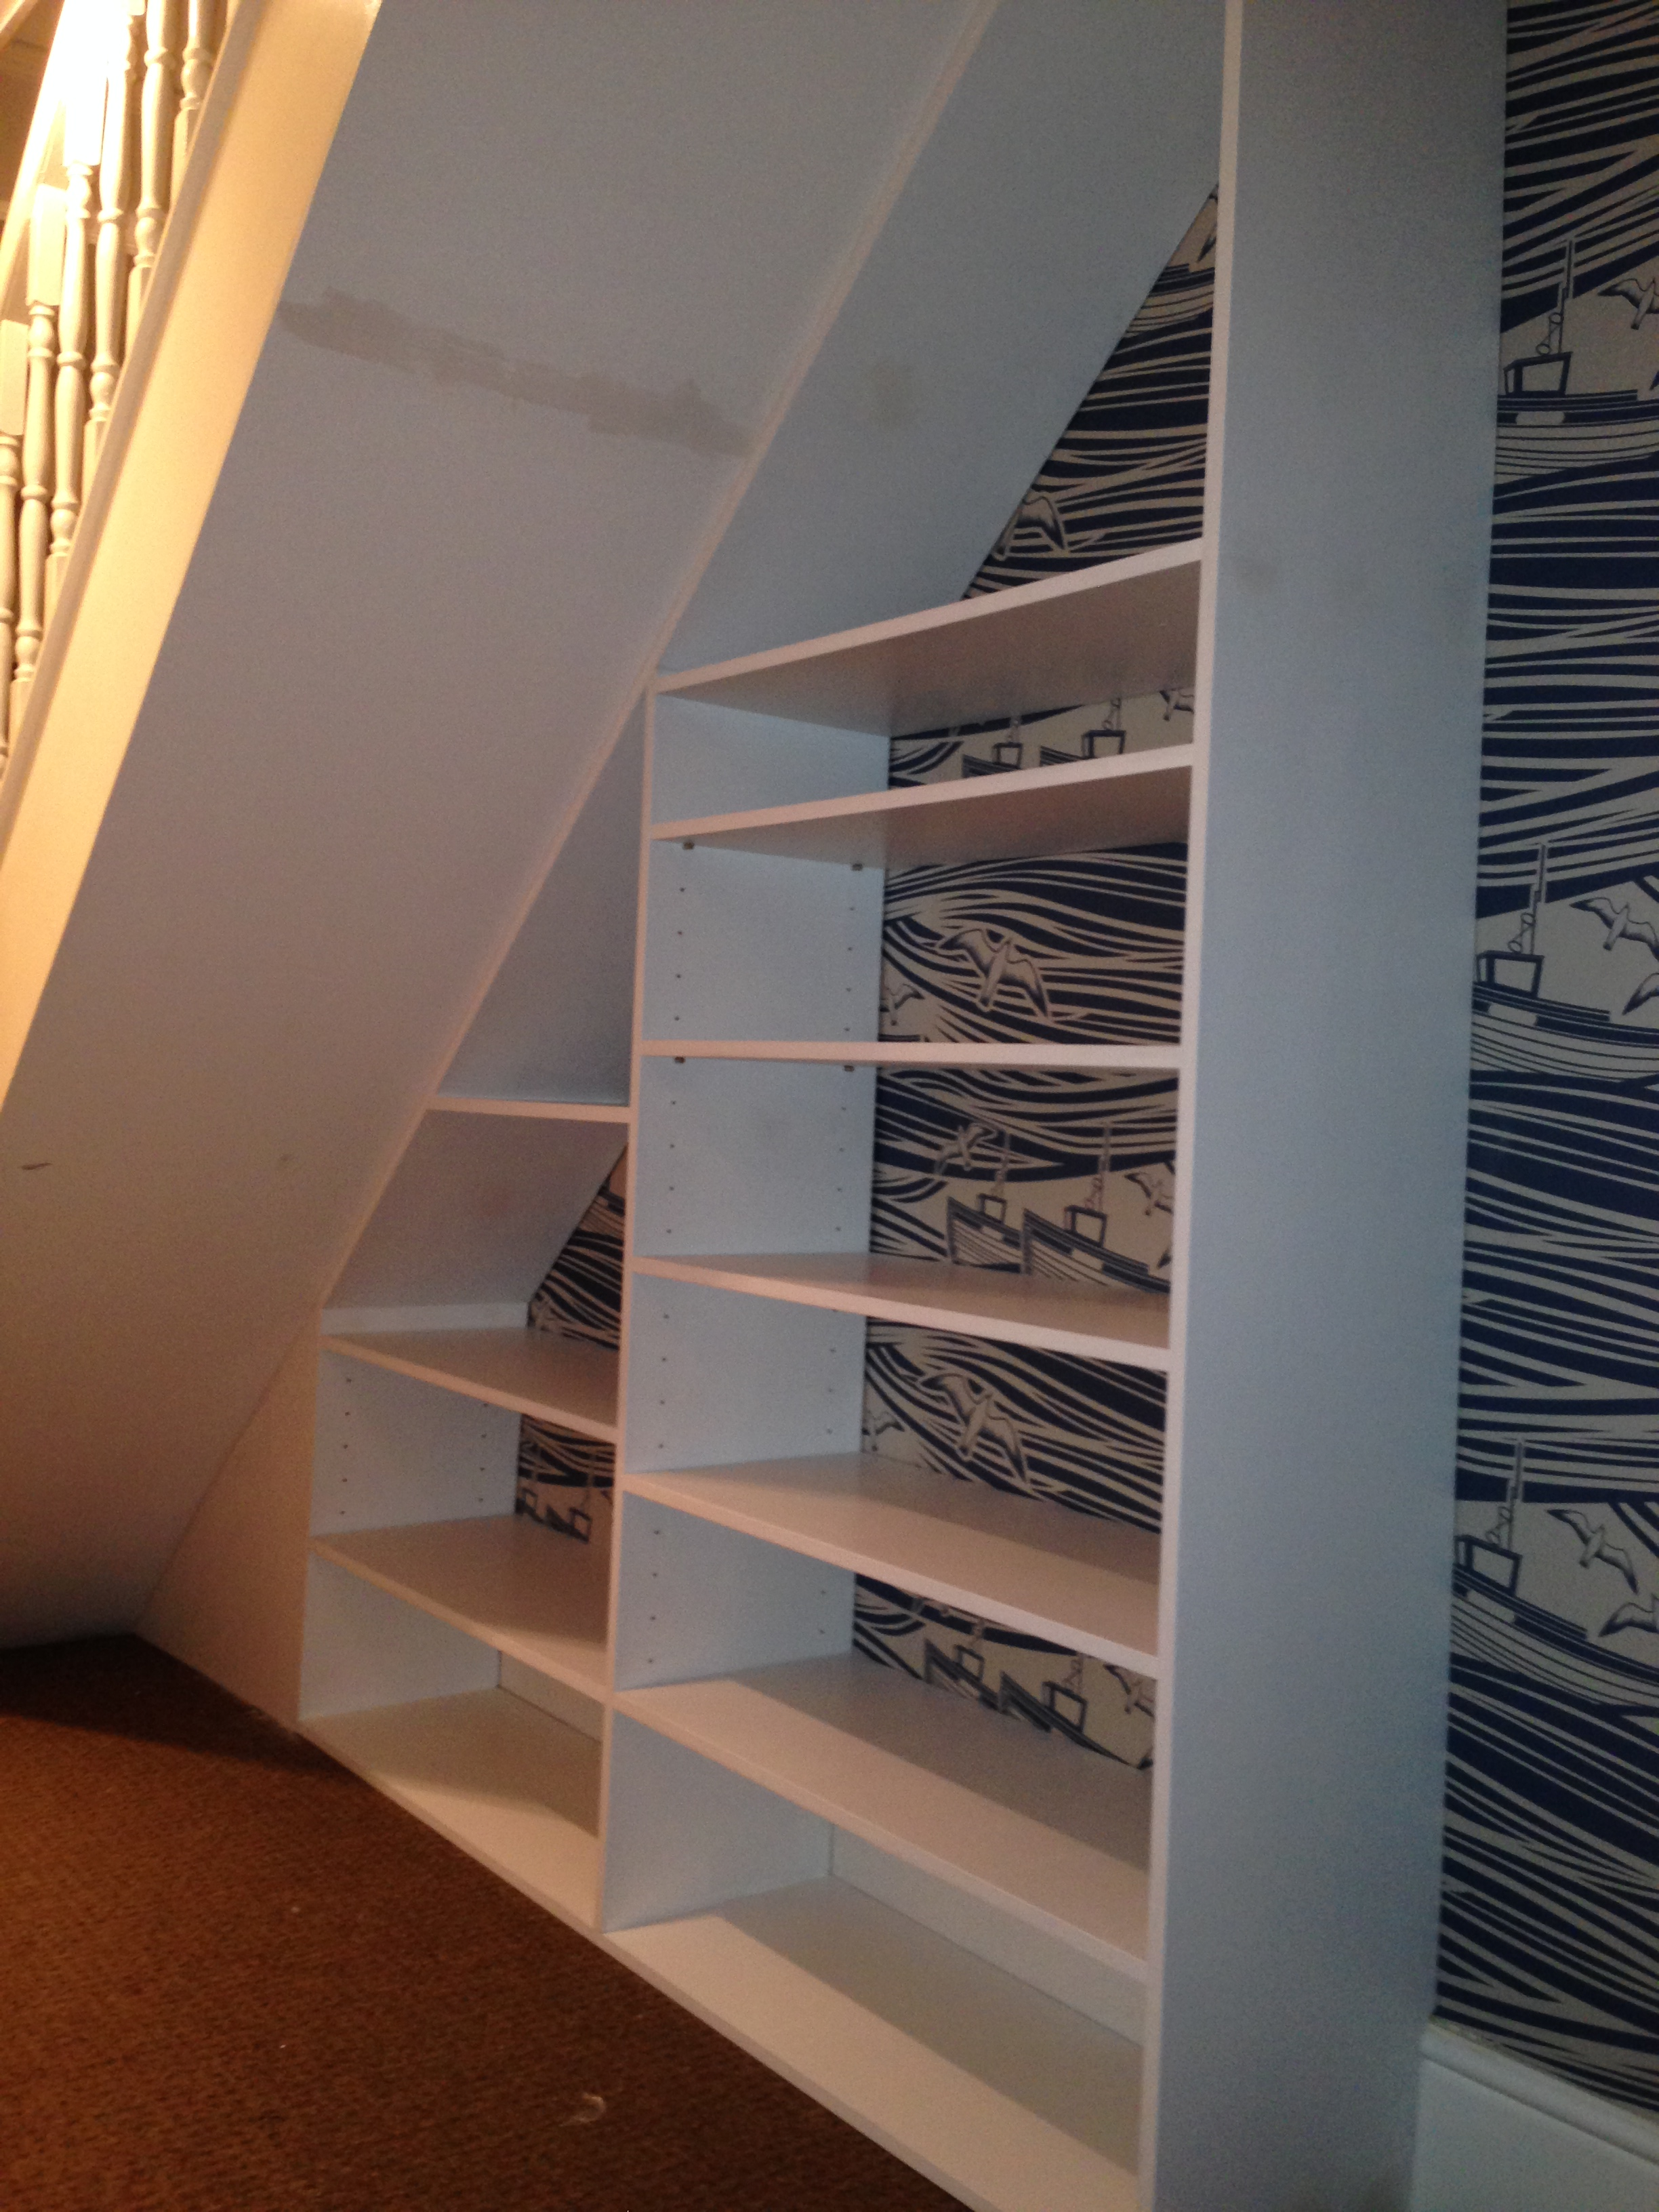 Bespoke Under Stairs Shelving: Bespoke Under Stair Shelving Unit, Whitstable, CT5